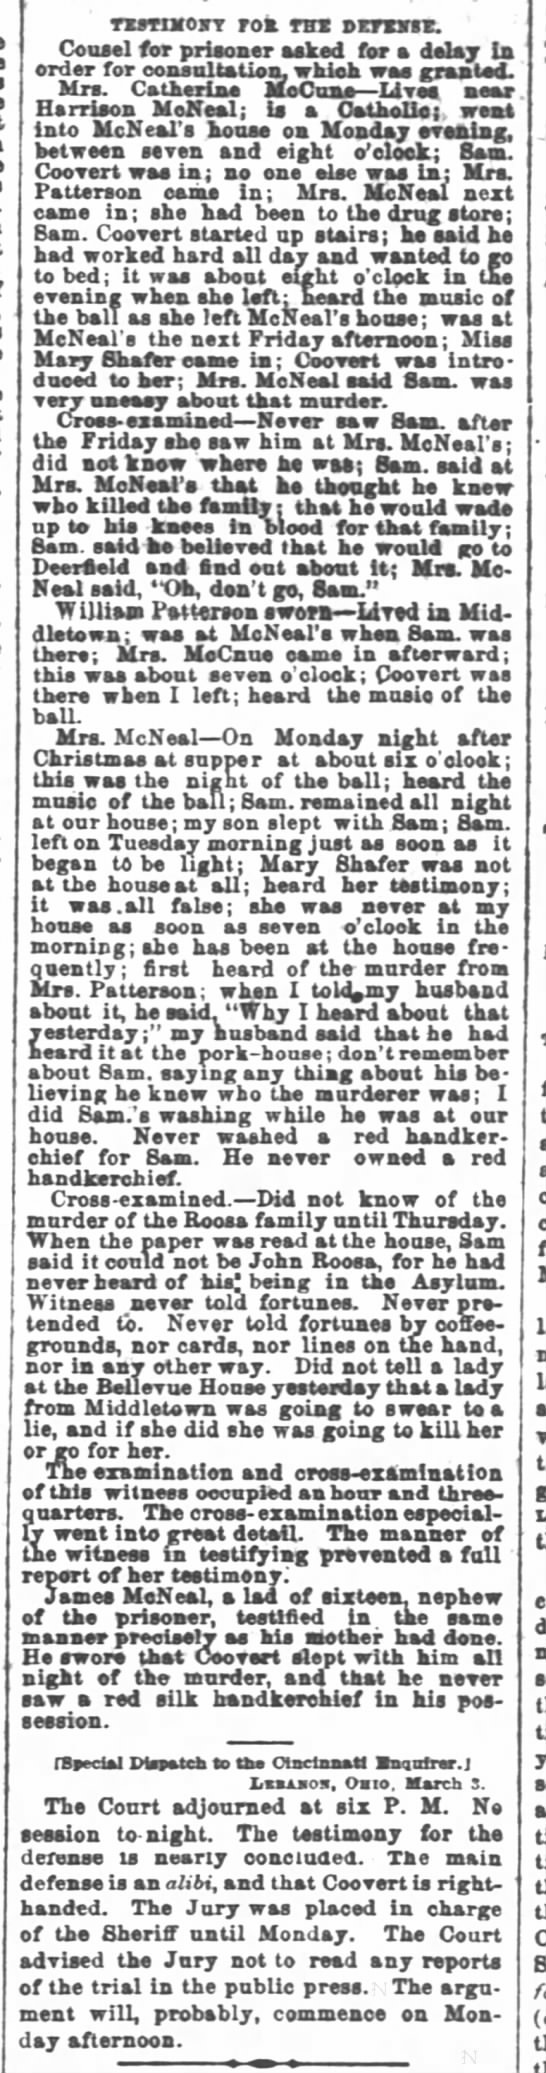 Cincinnati Enquirer 5 March 1866 p2 part 3 -